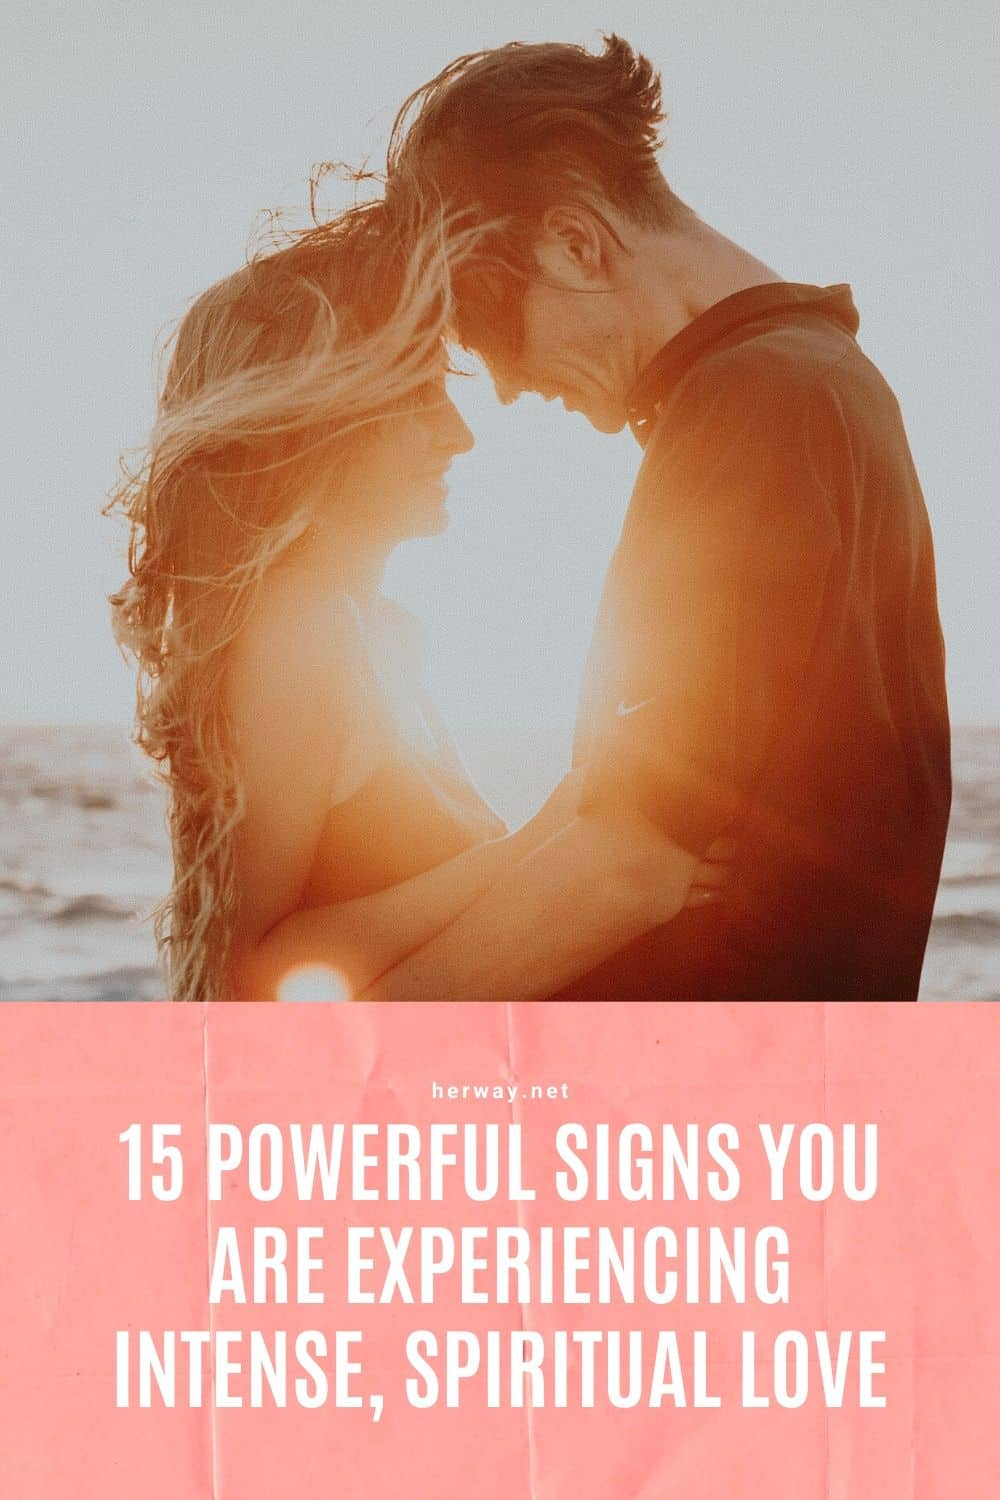 15 Powerful Signs You Are Experiencing Intense, Spiritual Love